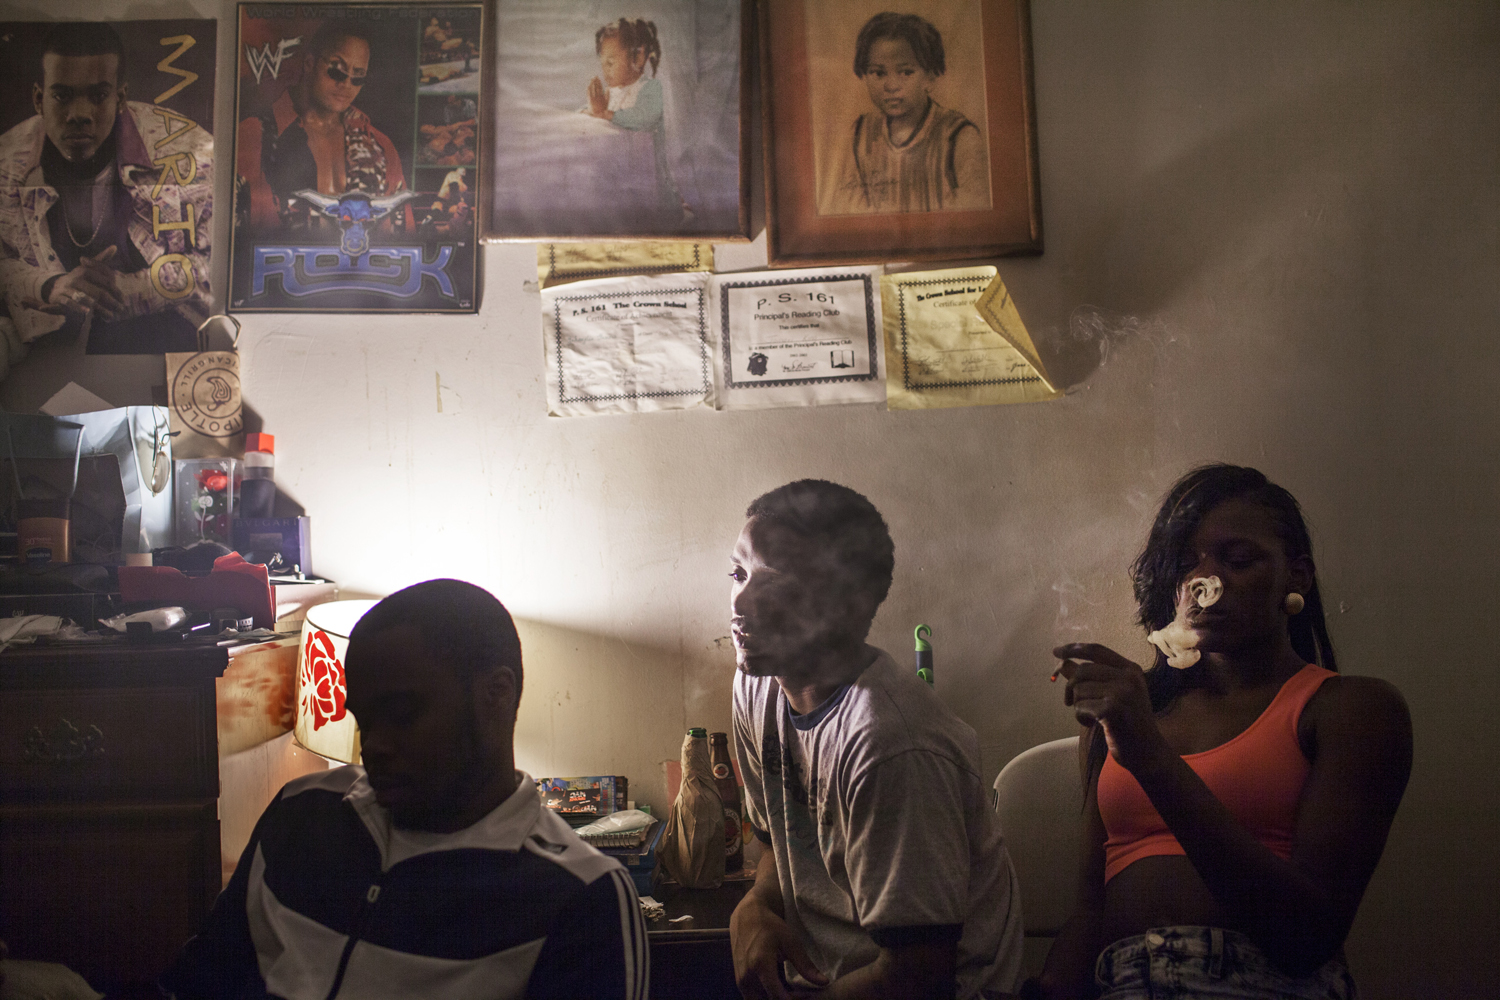 August 19, 2013. Velvet and friends smoke and watch the new Grand Theft Auto game being played in a  friend's bedroom.